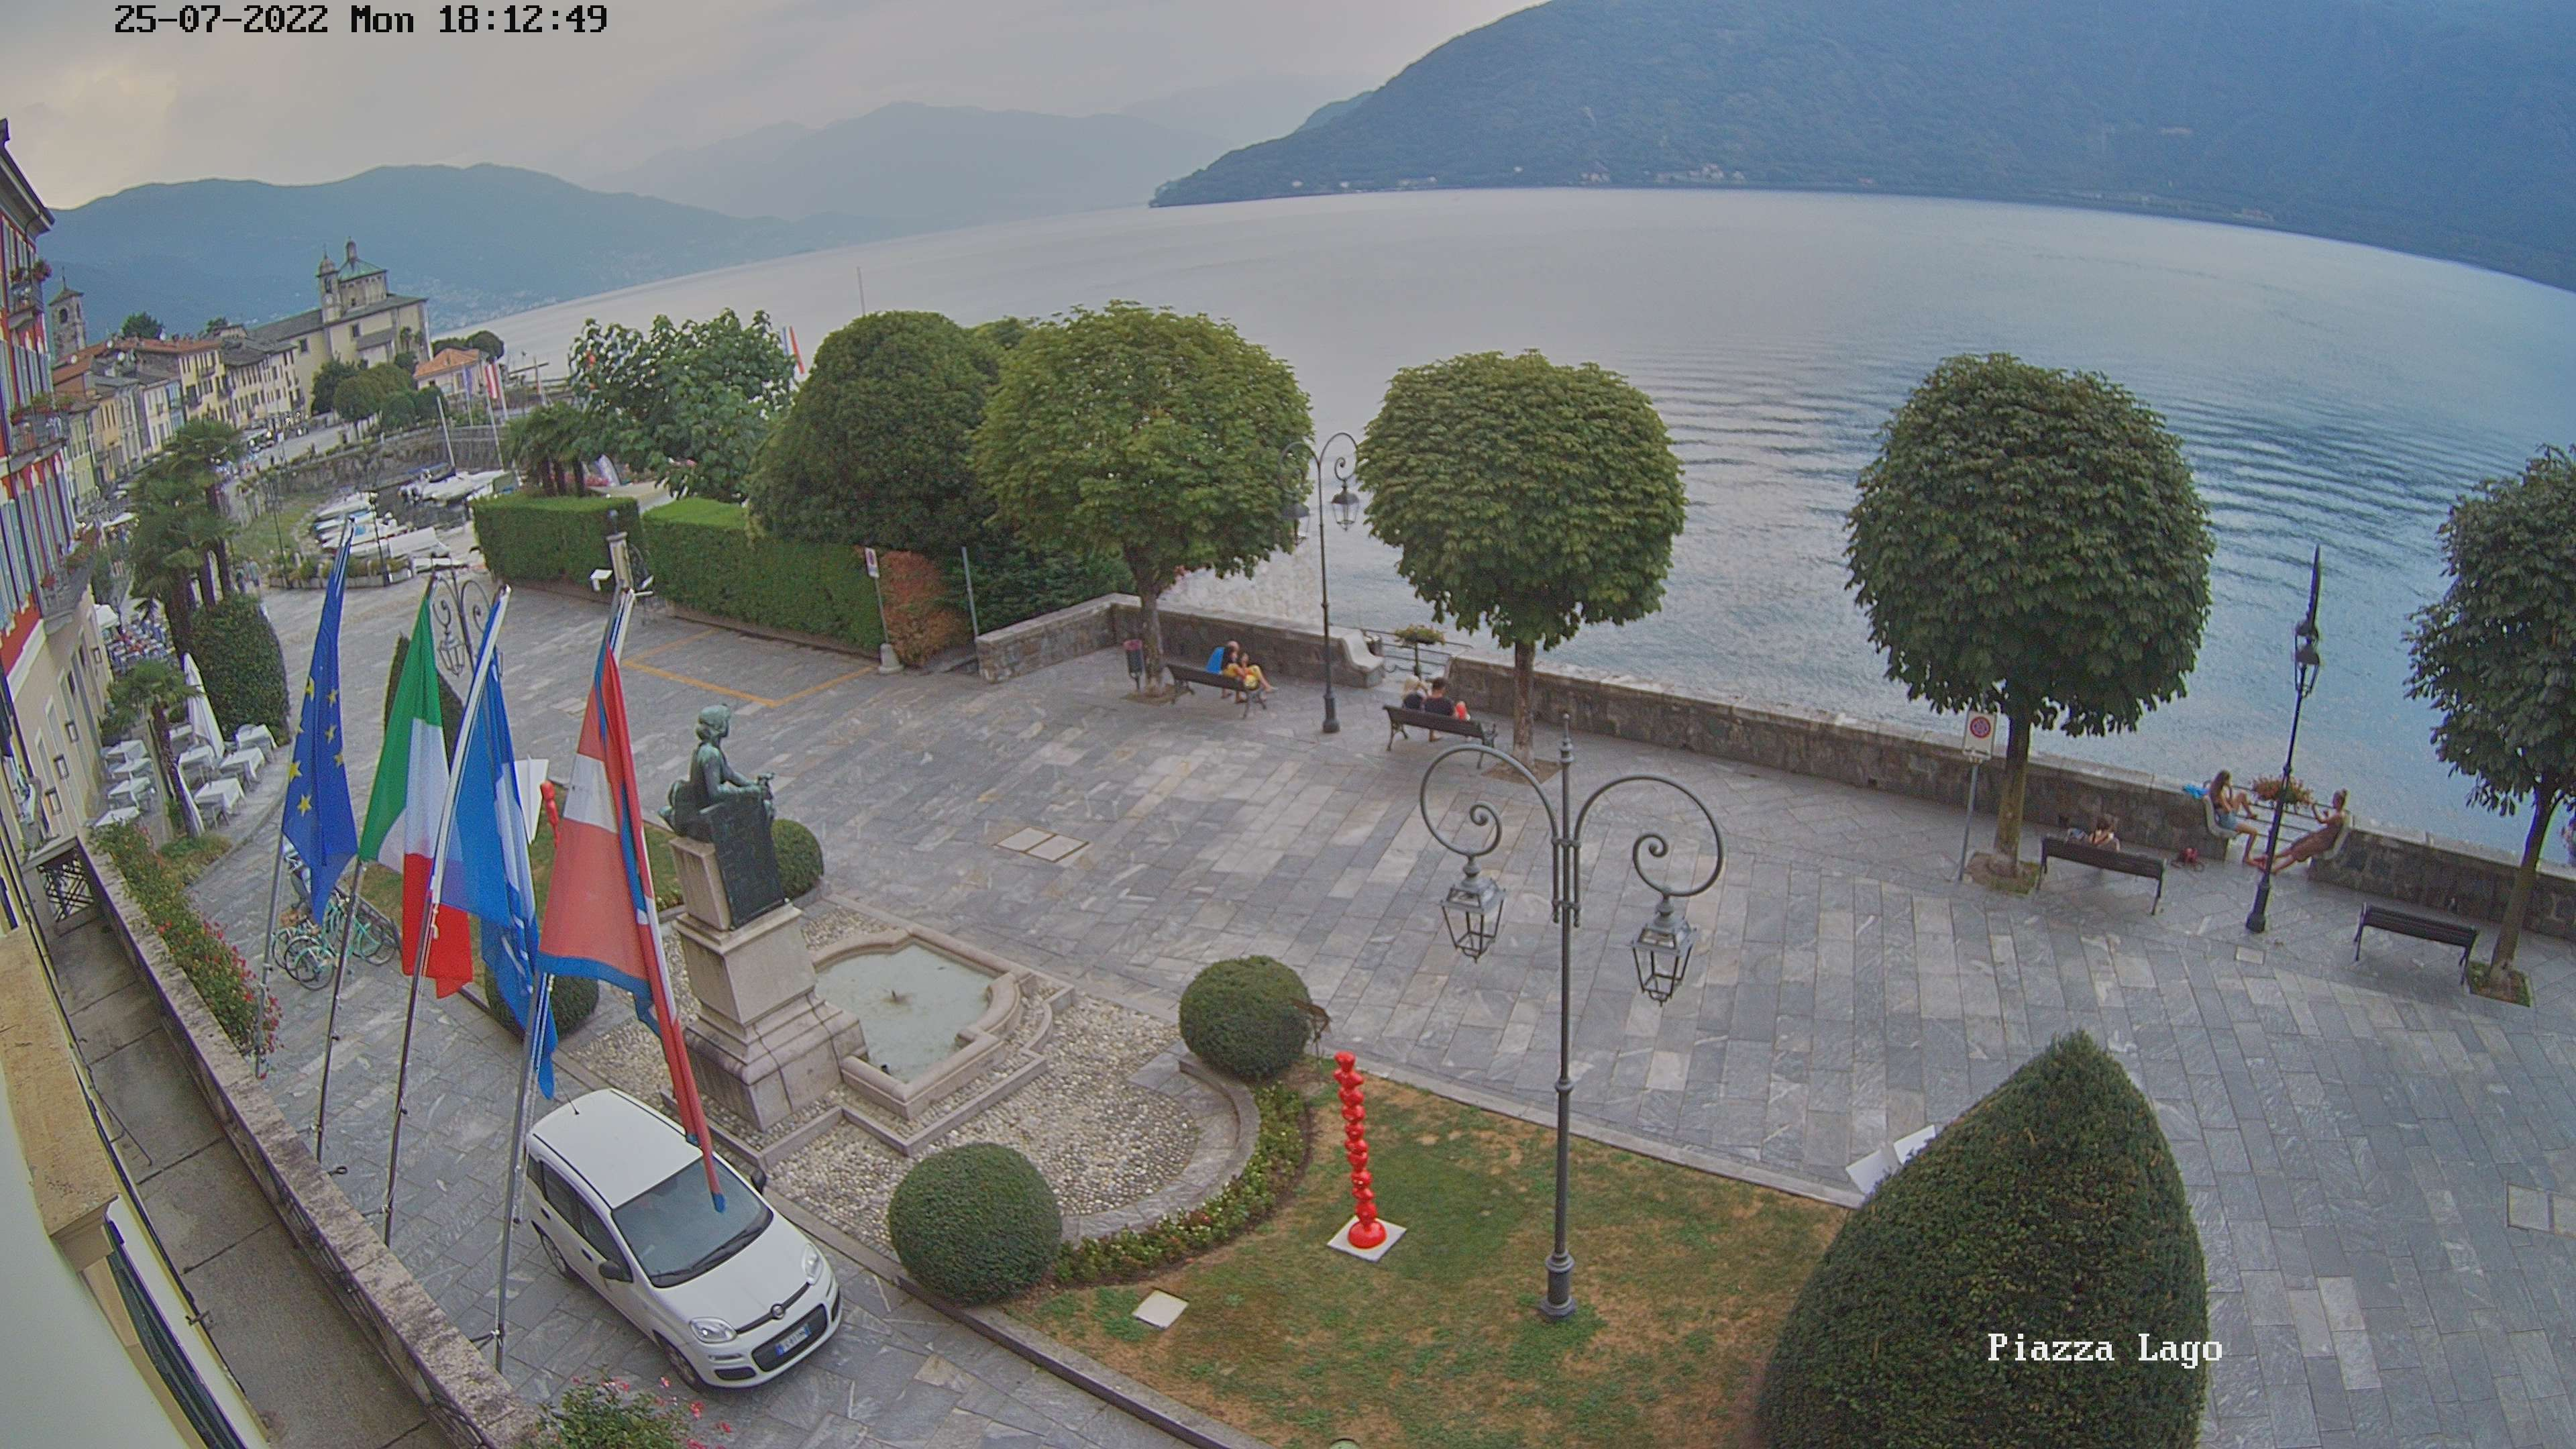 webcam Piazza lago Cannobio